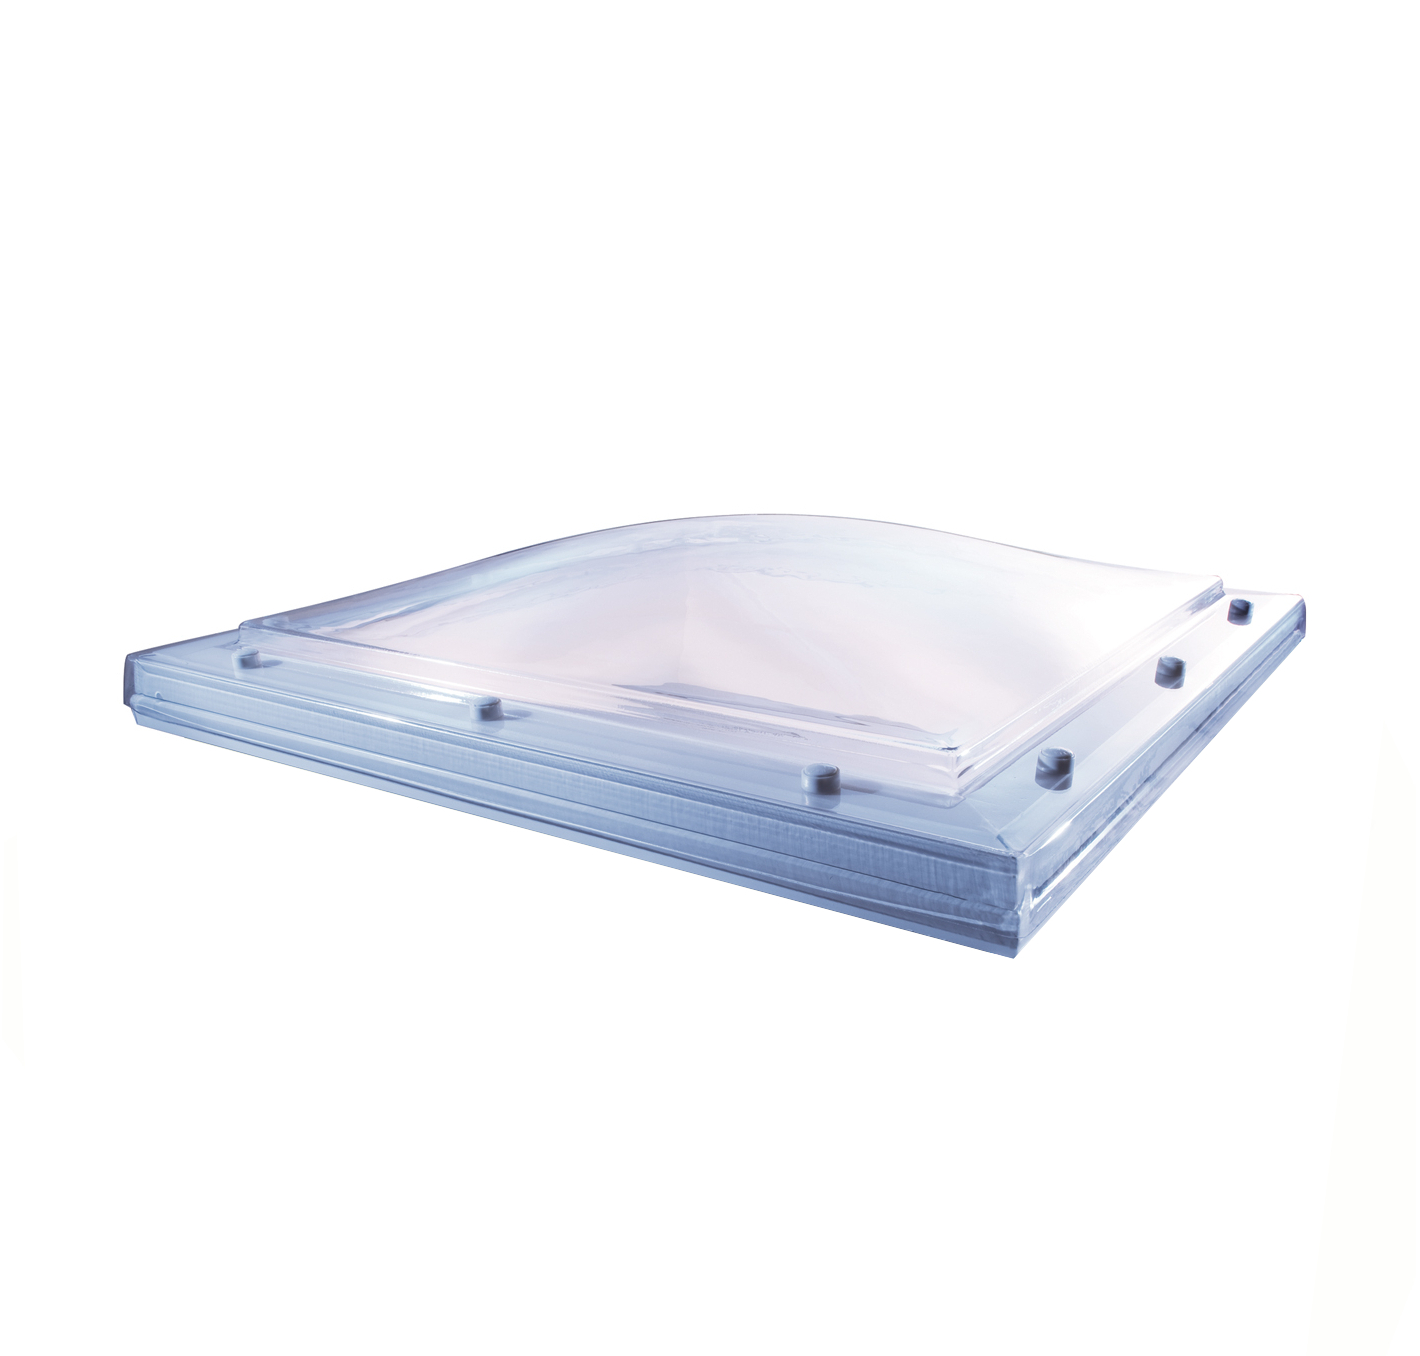 Mardome Trade Roof Light Double Skin (Dome Only)